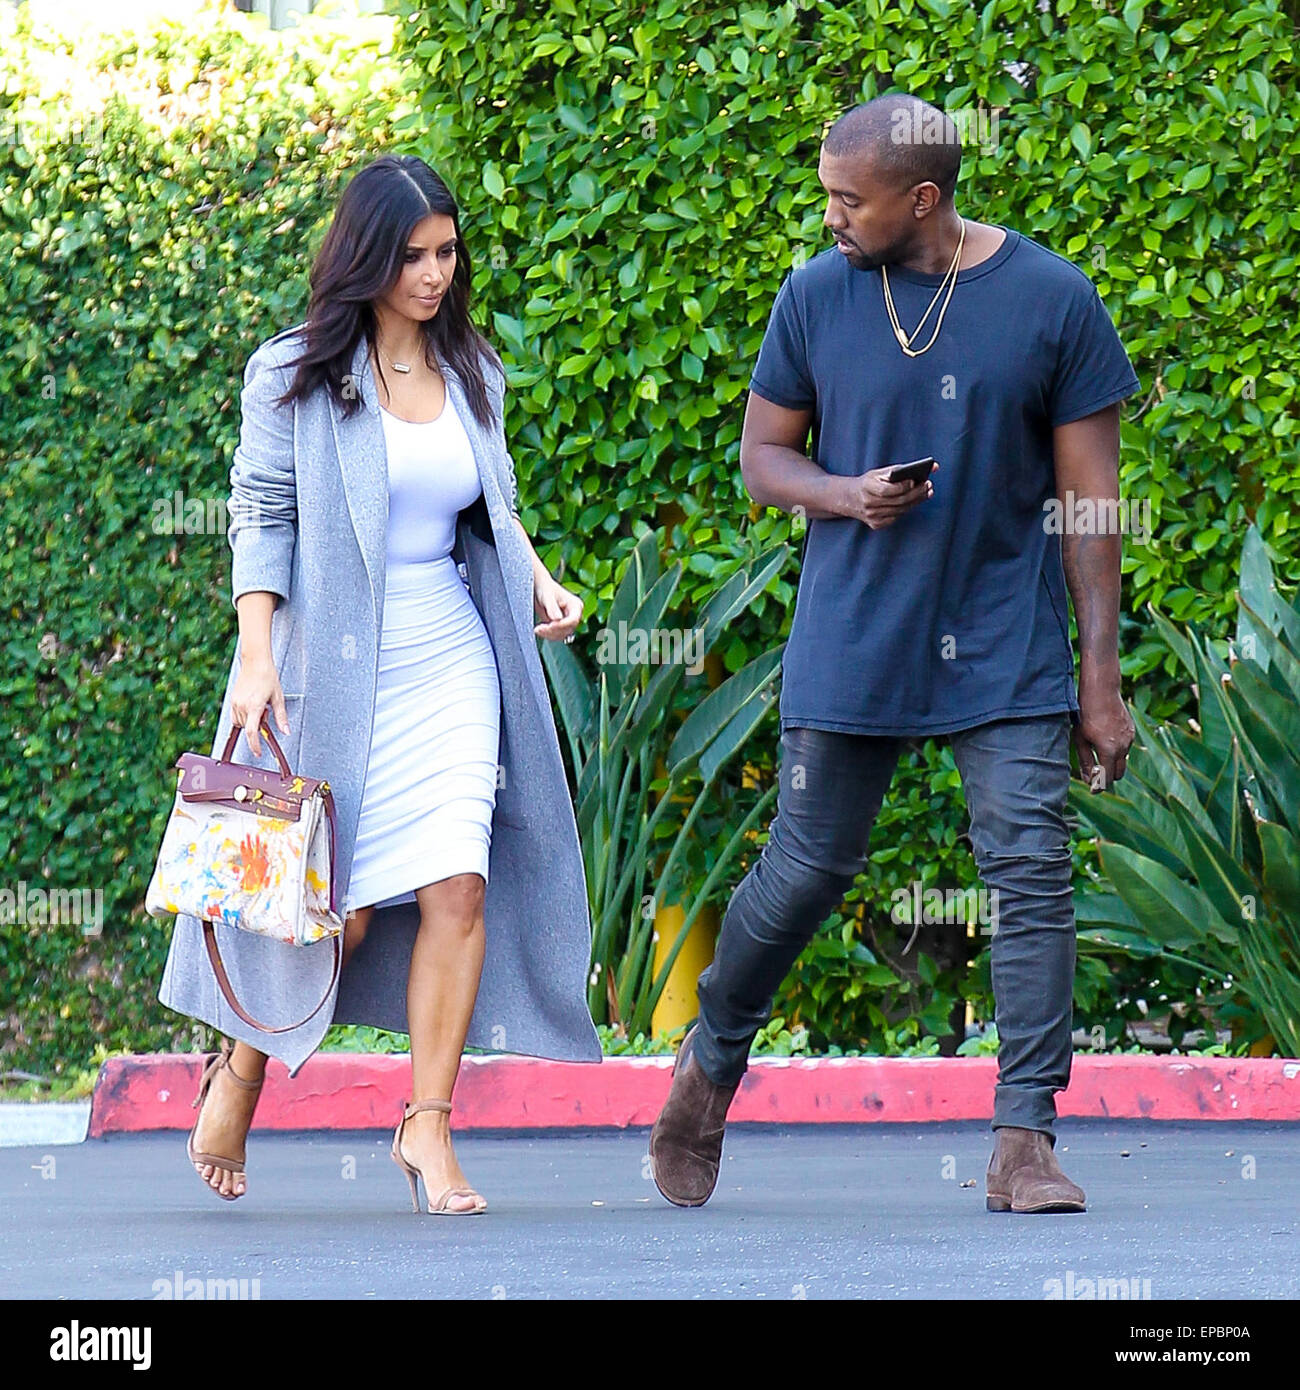 hermes wallet price - Kanye West And Kim Kardashian, Who's Holding An Original Hermes ...